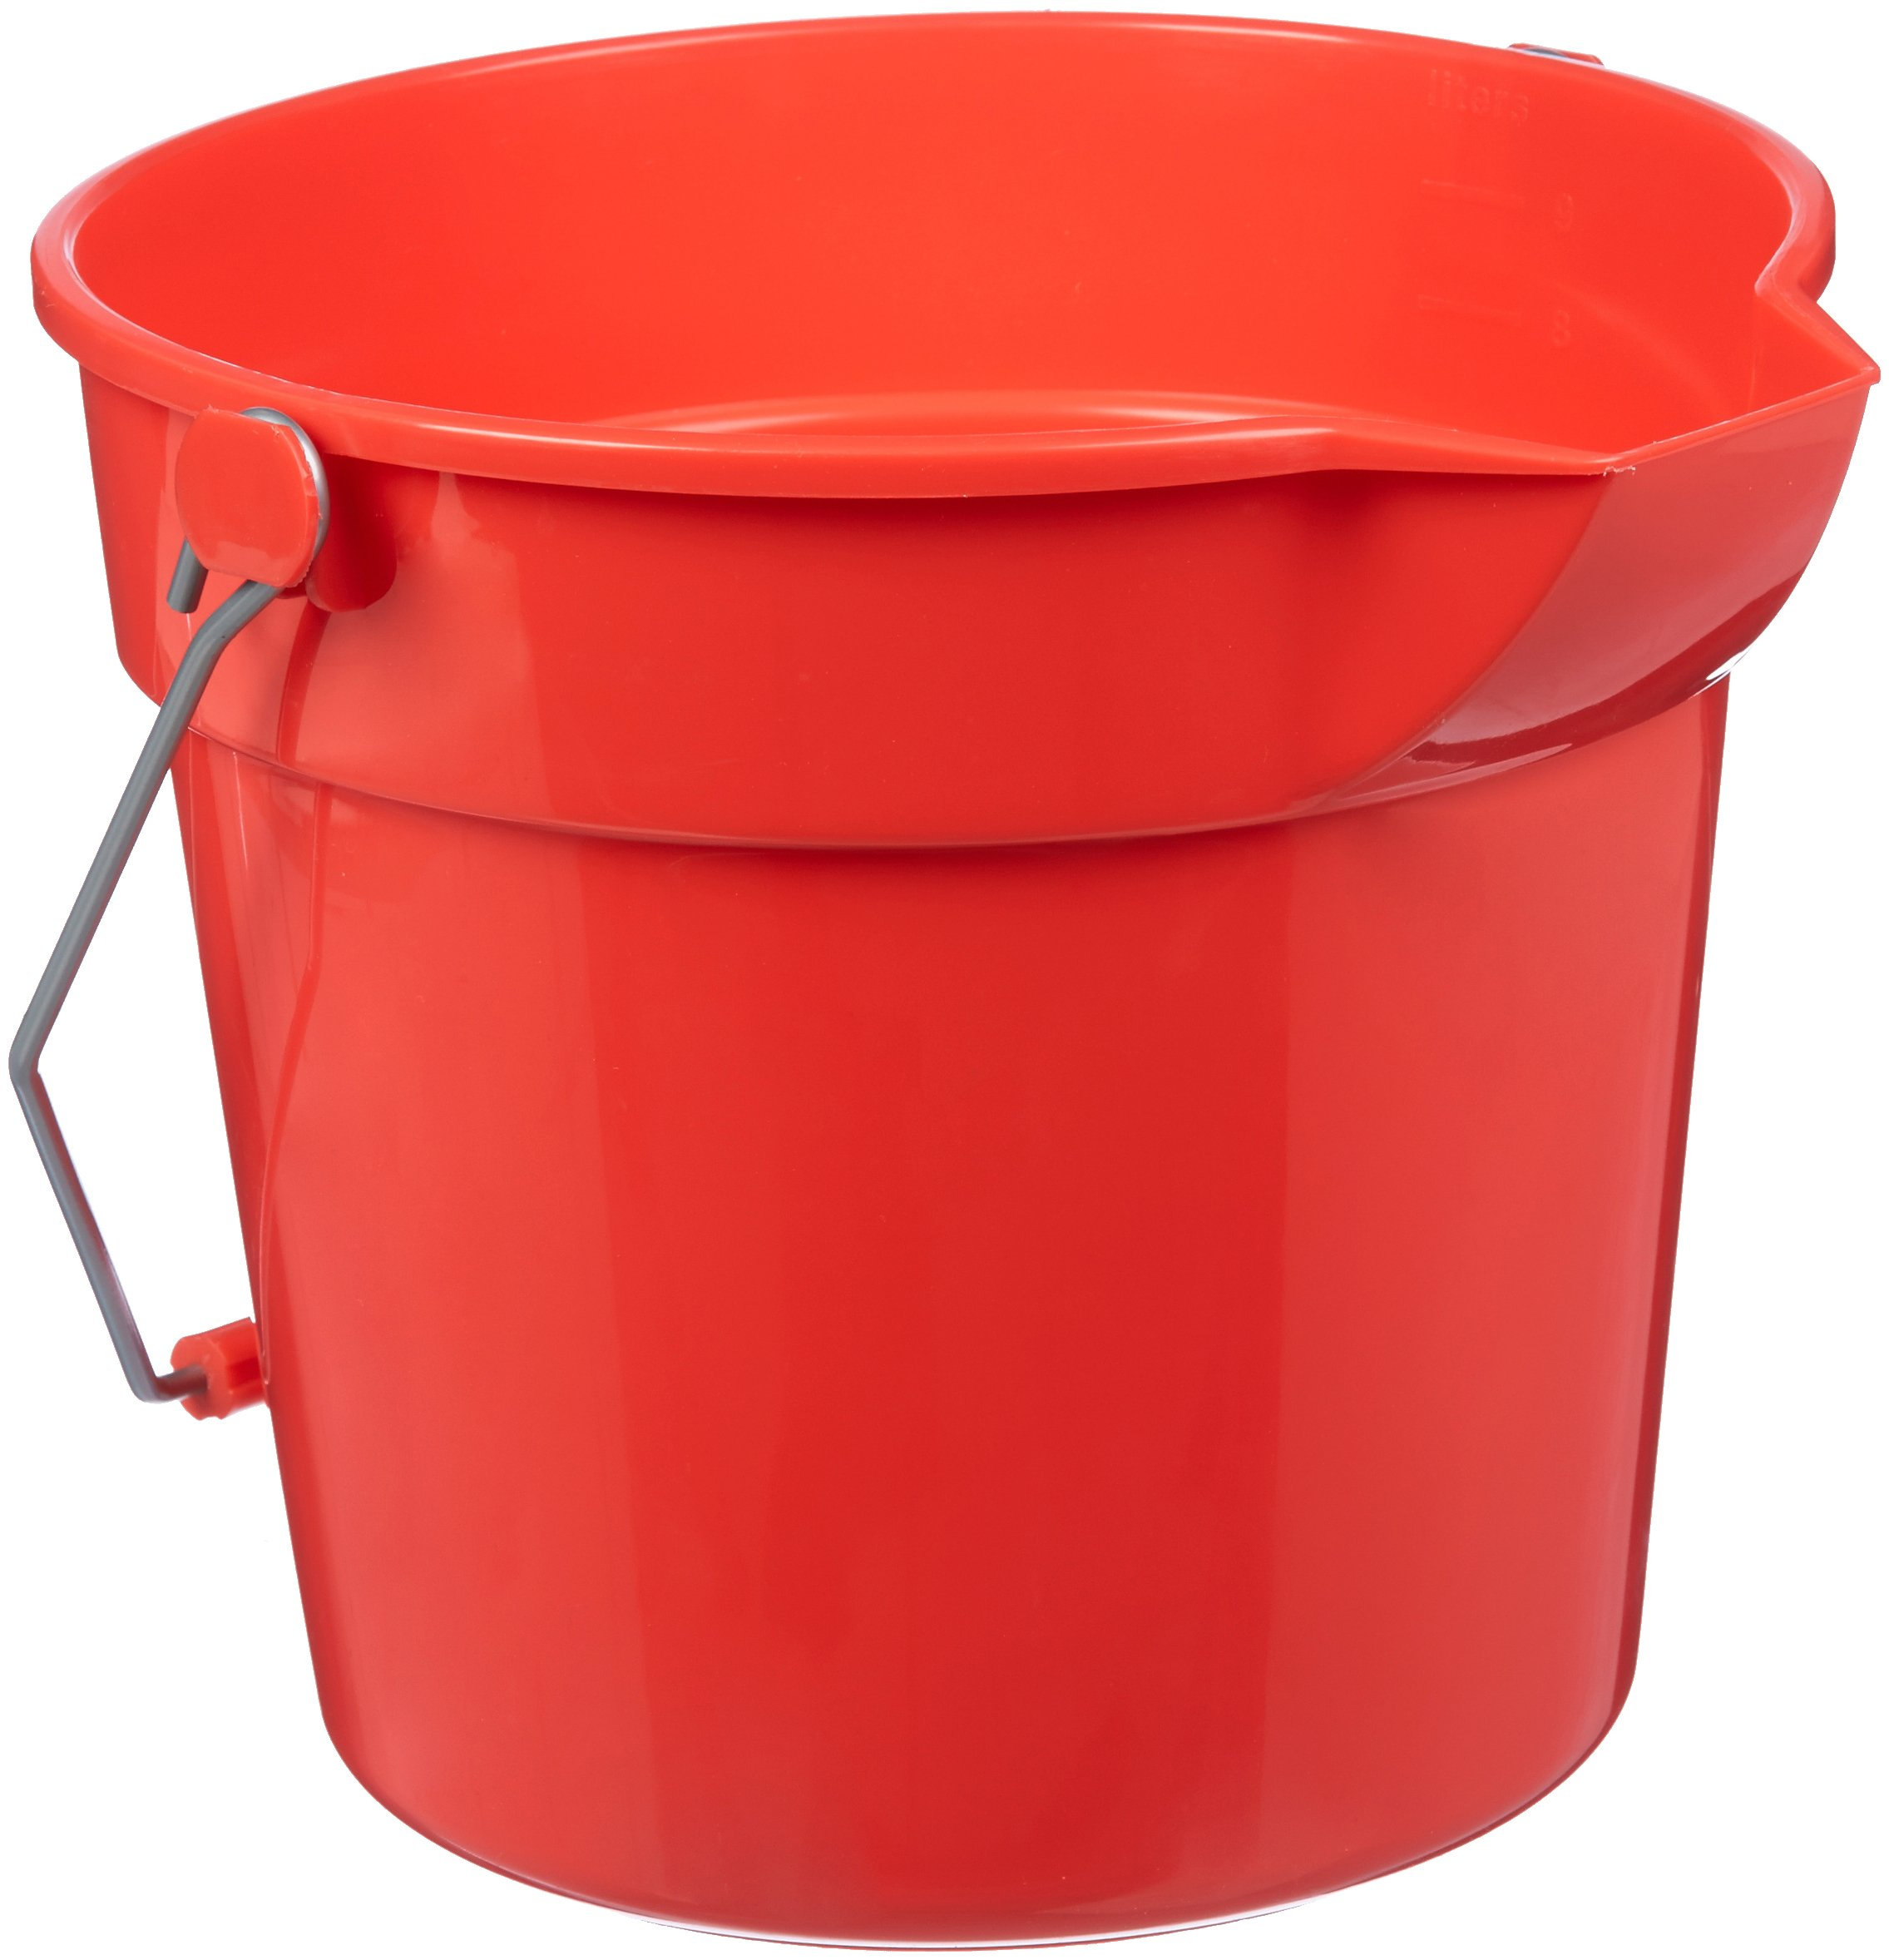 AmazonBasics Plastic Cleaning Bucket - 14-Quart, Red, 6-Pack